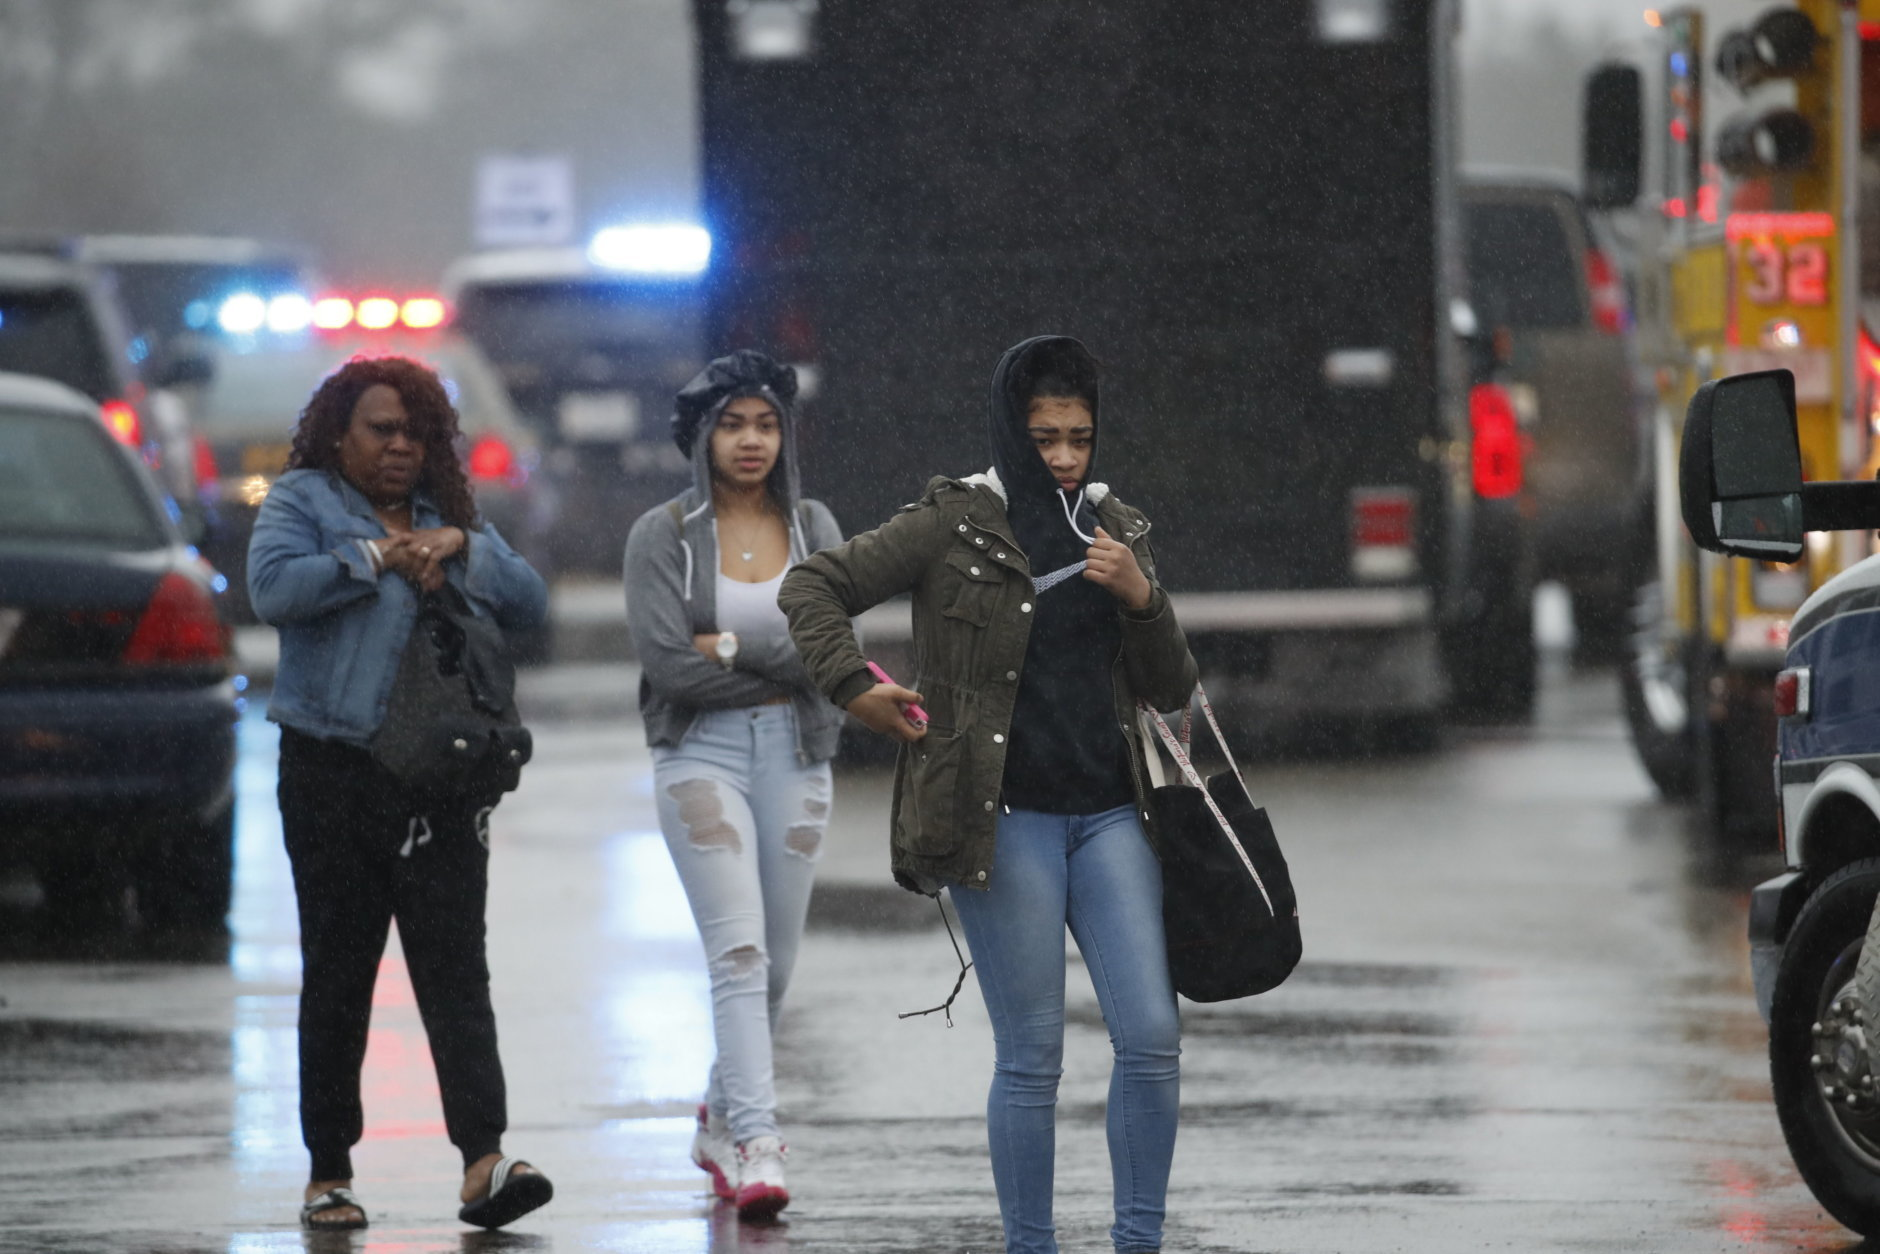 Two students and a mother leave Great Mills High School, the scene of a shooting, Tuesday morning, March 20, 2018 in Great Mills, Md. The shooting left at least three people injured including the shooter. (AP Photo/Alex Brandon  )